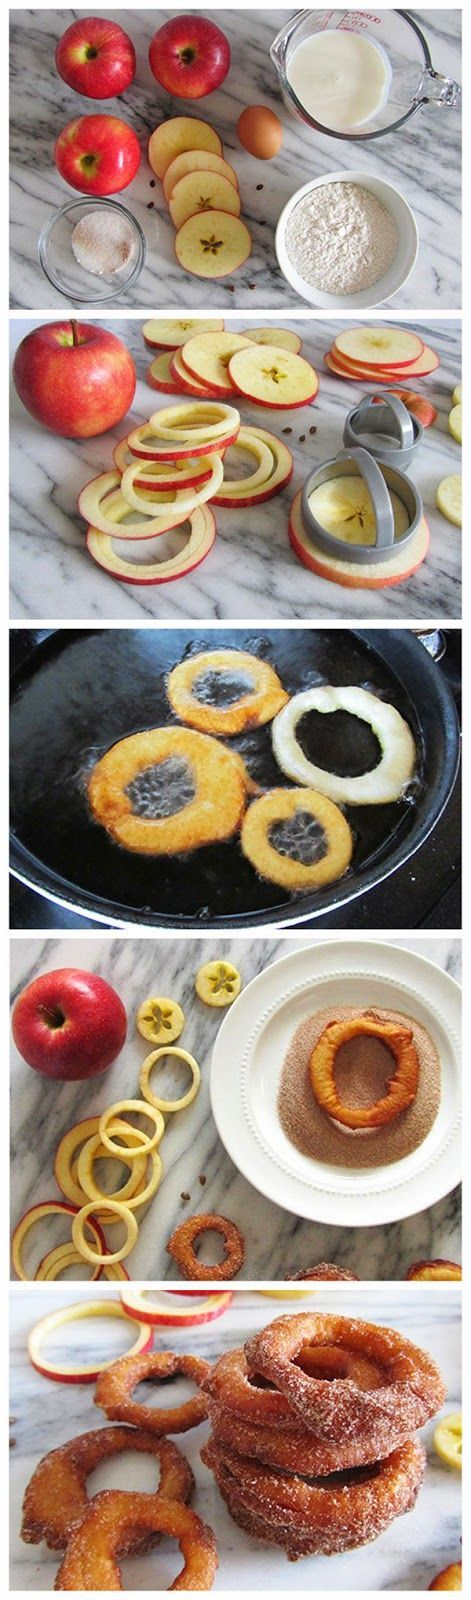 Supernatural Style | Cinnamon Apple Rings. Use gluten free flour, flax egg, and full…